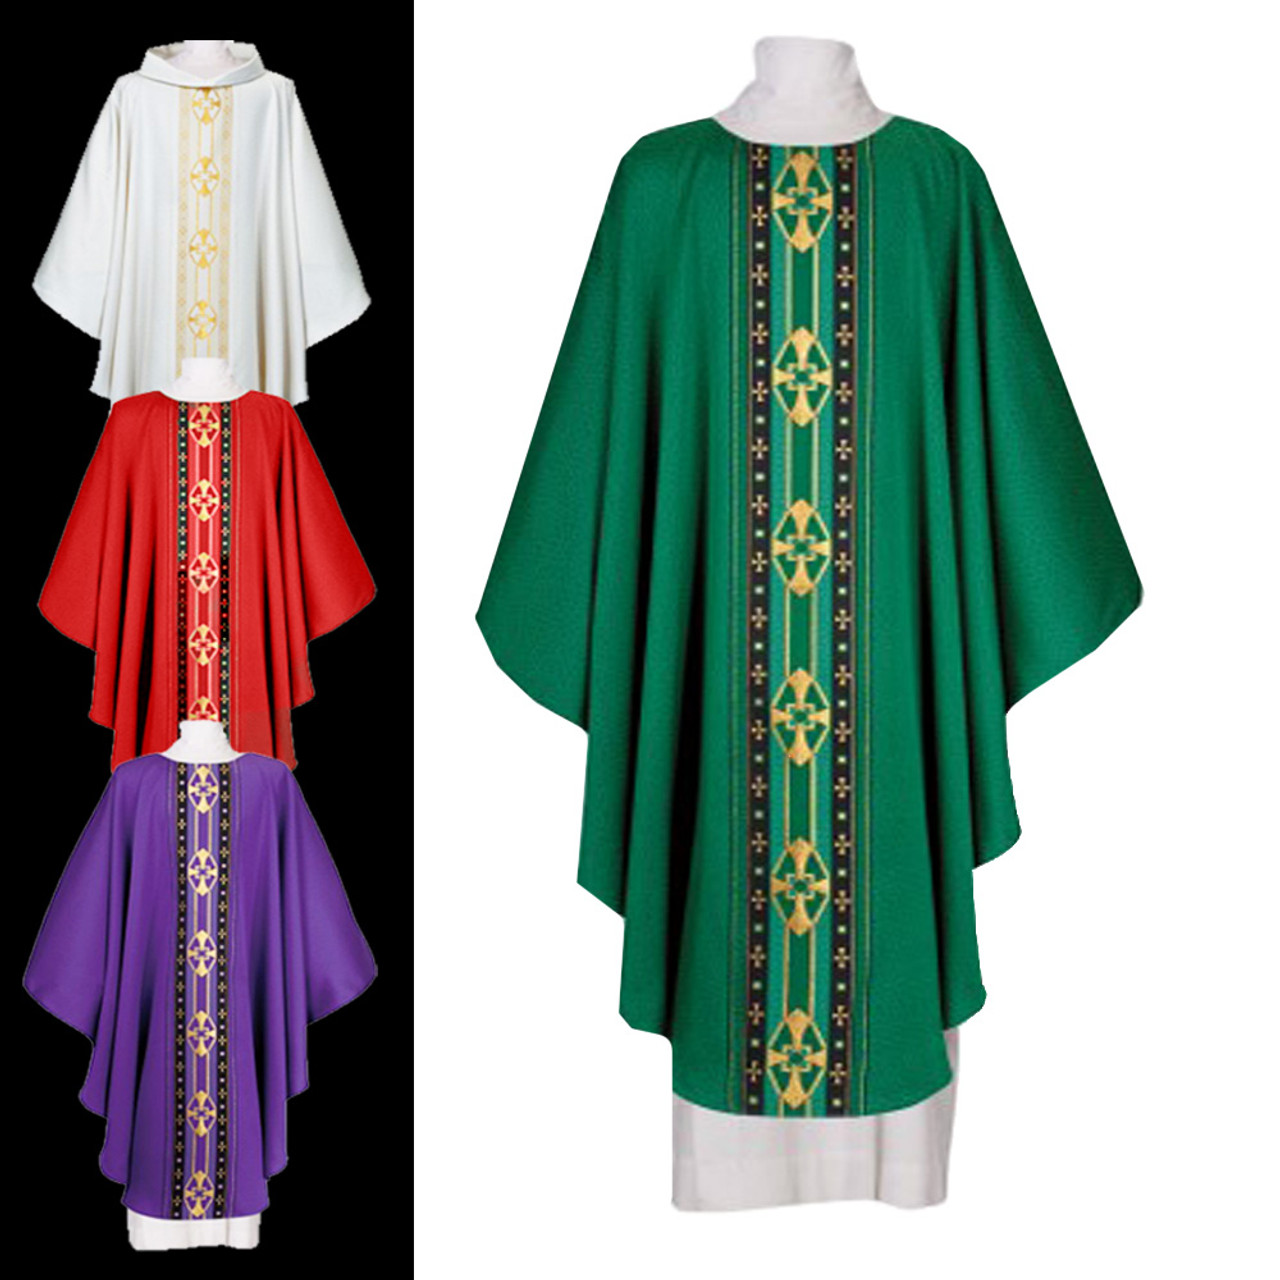 700231 Green Chasuble from Houssard Plain Collar with Zipper